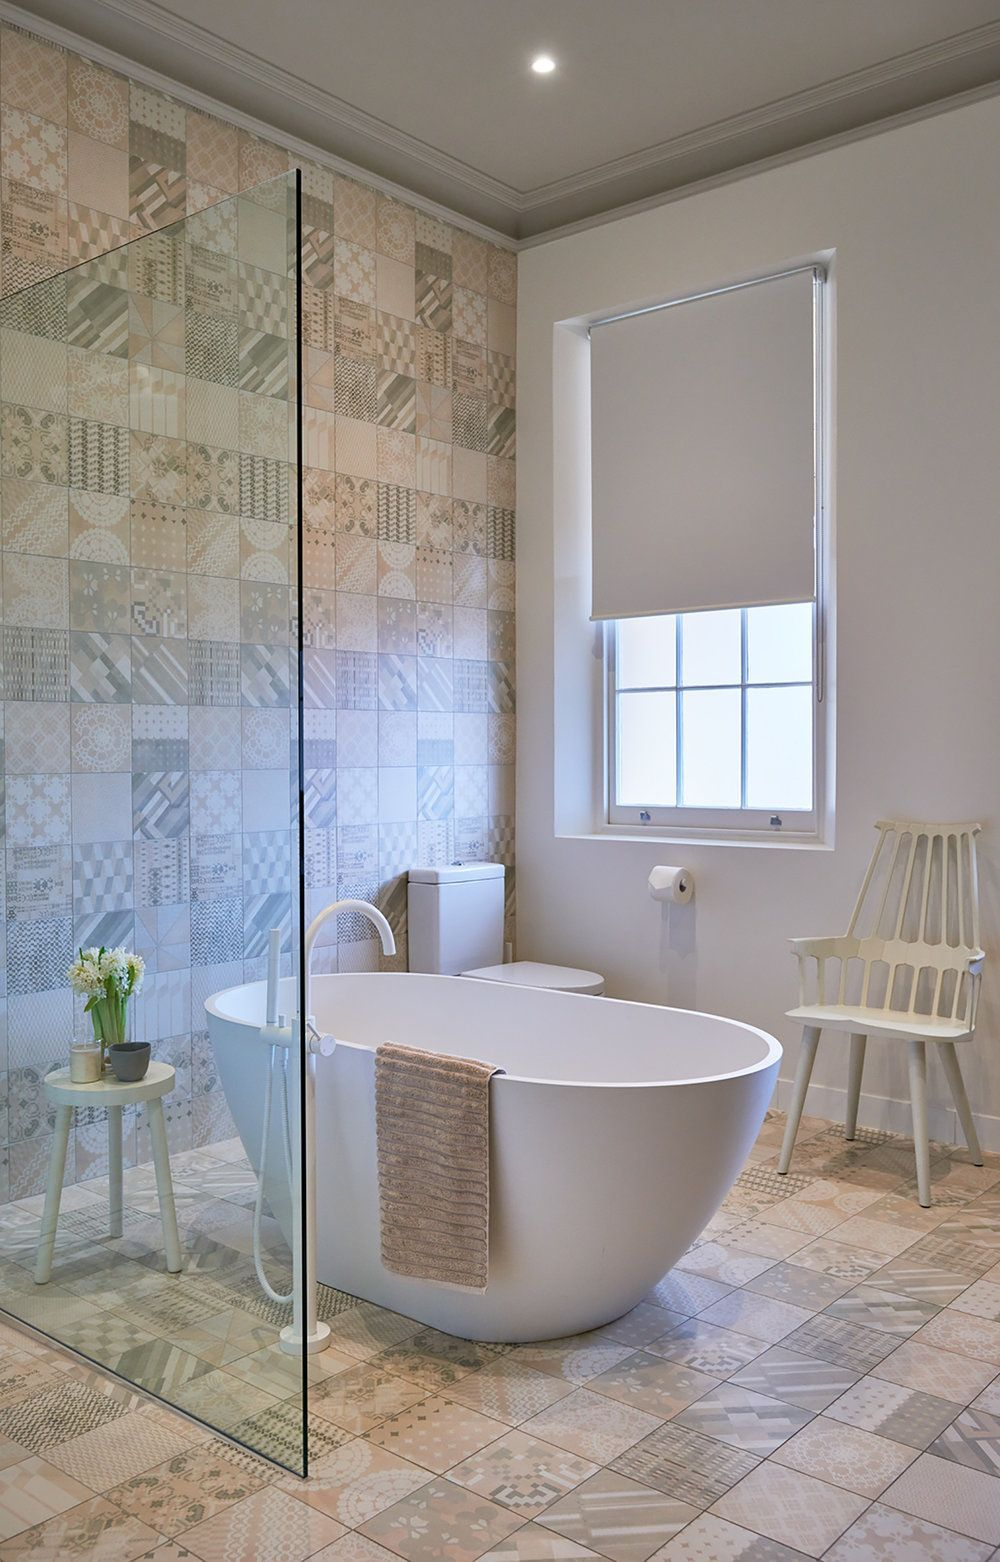 Gorgeous Bathrooms With Freestanding Tub Focal Points ... on walk in tubs bathroom design, copper tub bathroom design, claw tub bathroom design, clawfoot tub bathroom design, garden tub bathroom design, corner tub bathroom design, shower bathroom design, cottage bathroom design, rectangular tub bathroom design,